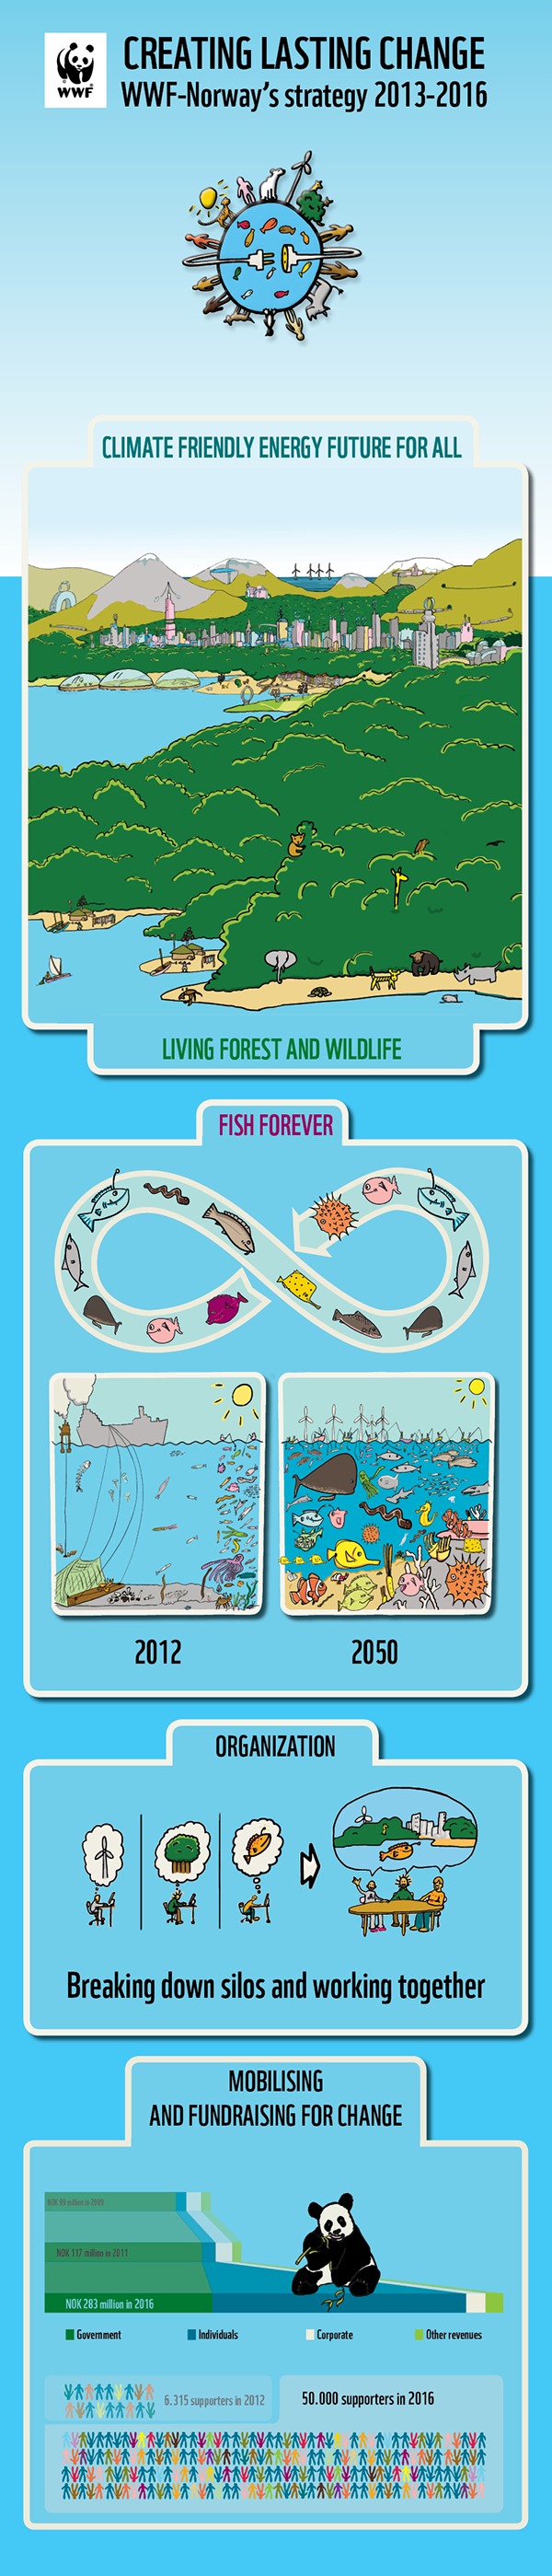 Illustrations commissoned by WWF-Norway. on Behance